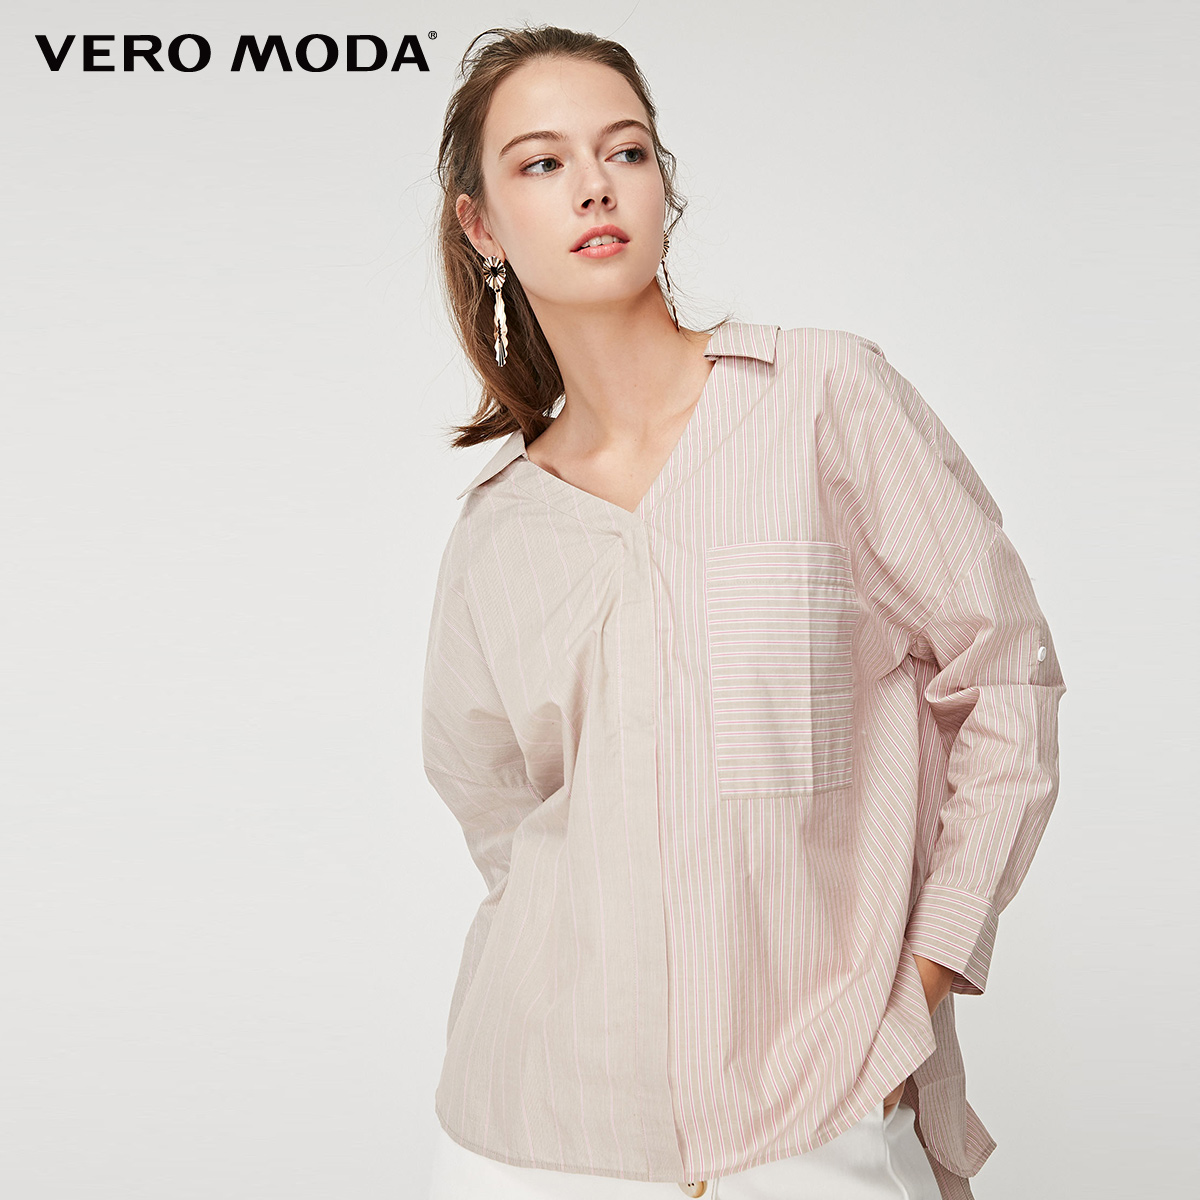 Vero Moda Women's 100% Cotton Striped Loose Fit Drop-shoulder Sleeves Shirt | 319151515